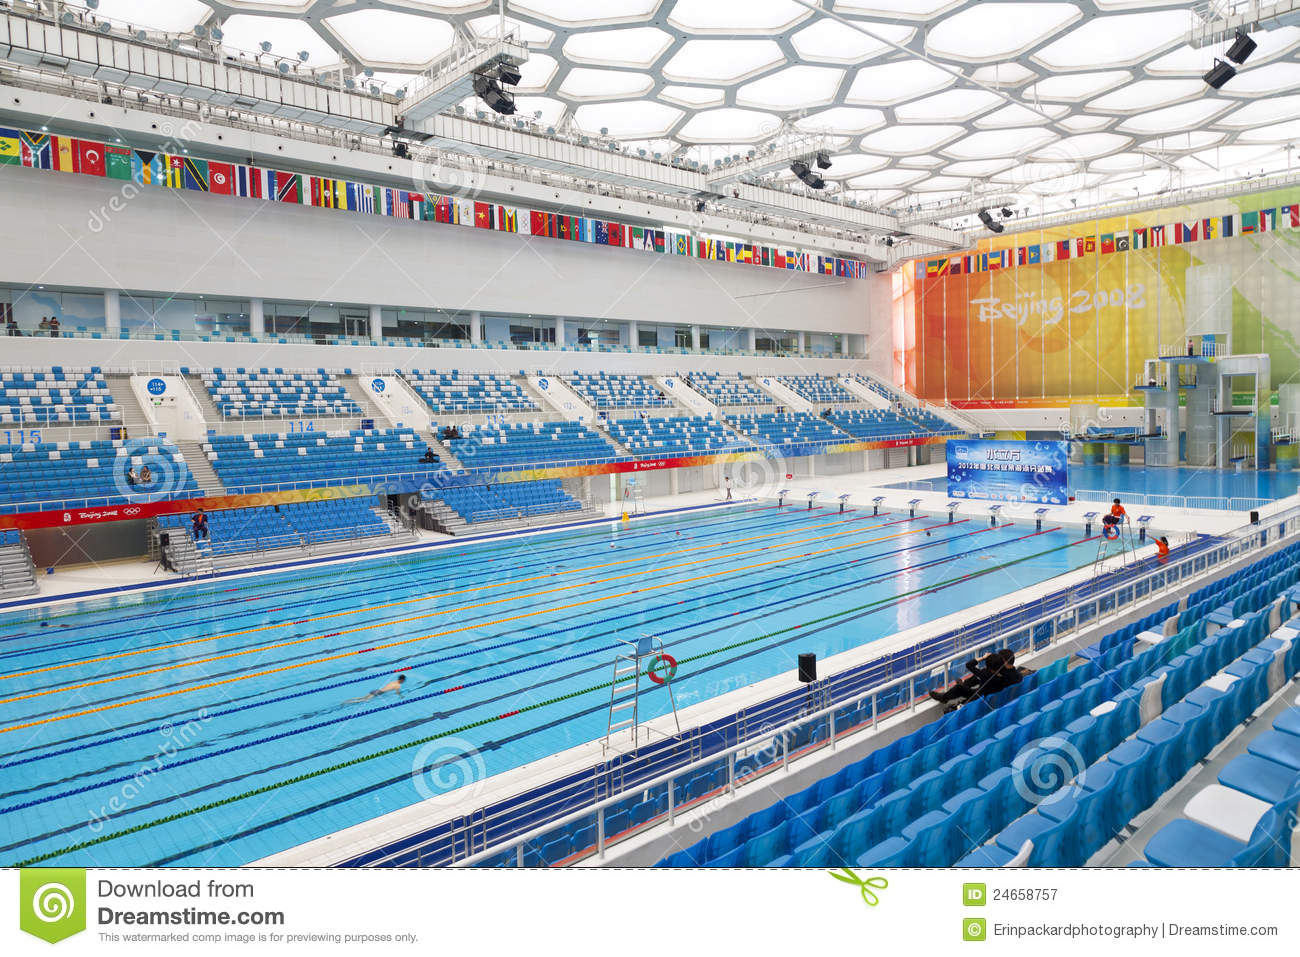 editorial stock photo download olympic swimming pool - Olympic Swimming Pool Top View